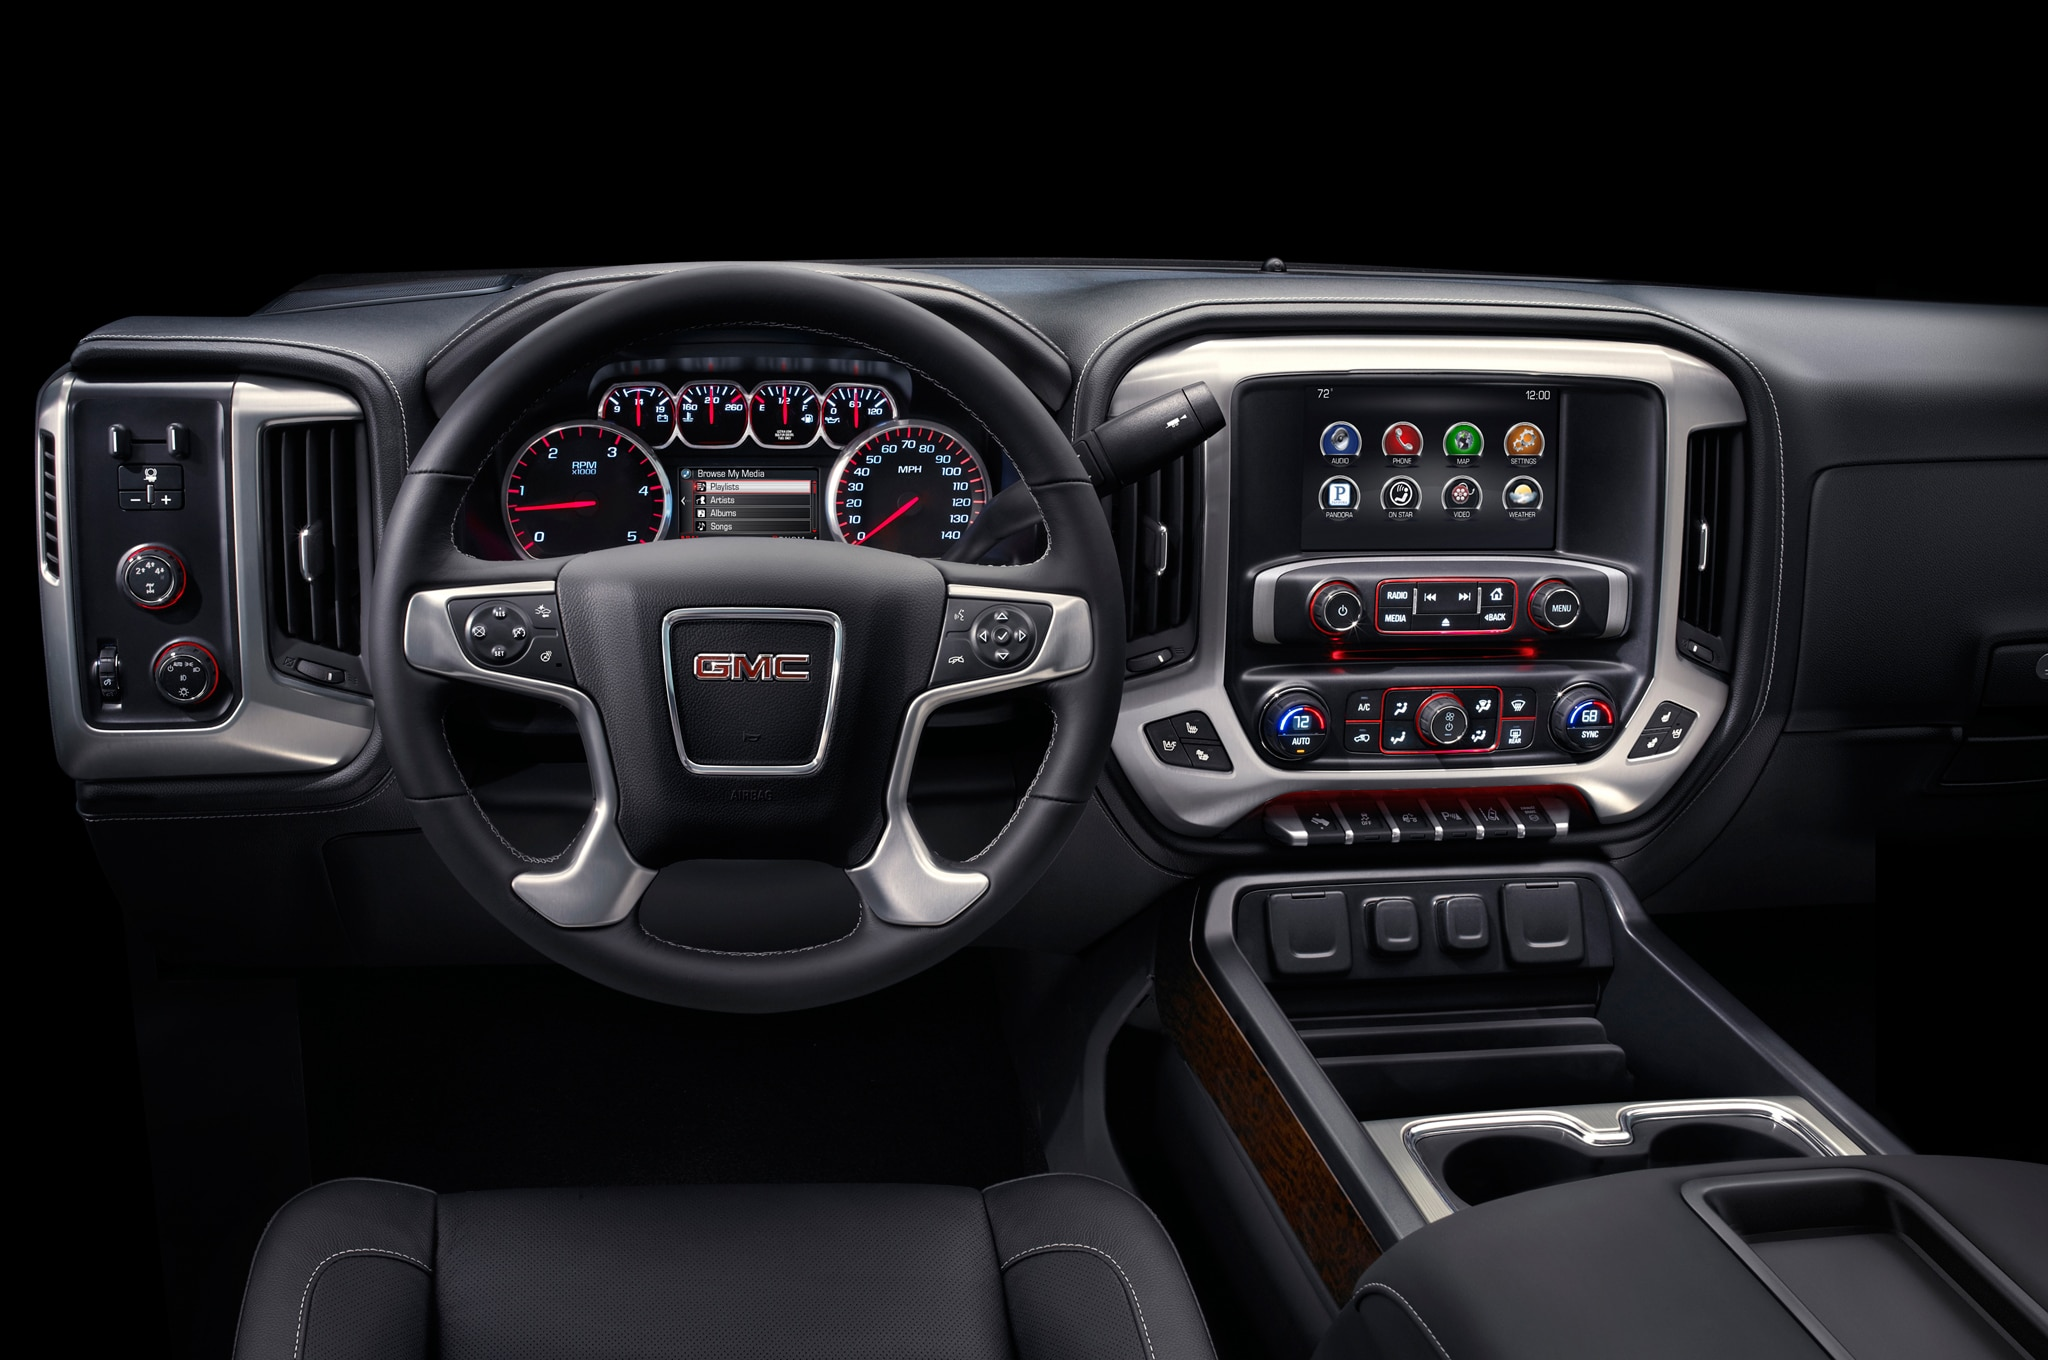 2015 GMC Sierra 2500HD dash